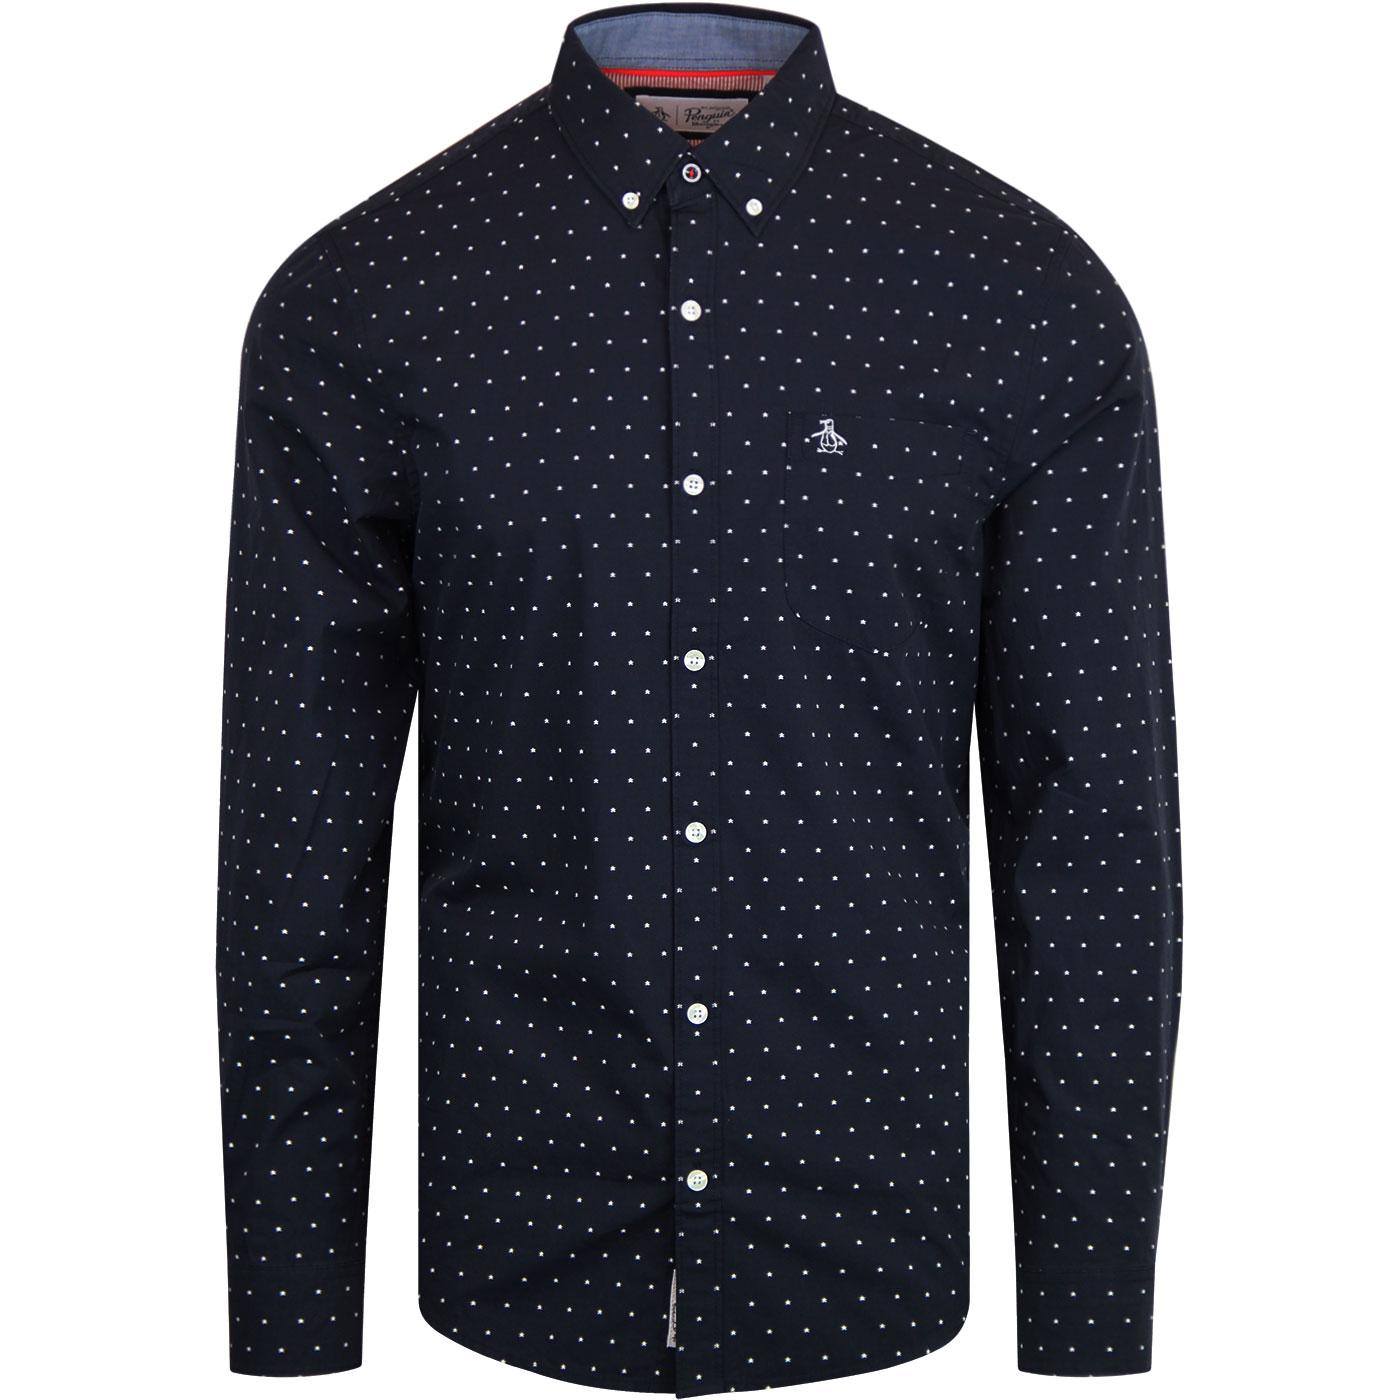 ORIGINAL PENGUIN Star Dobby L/S Retro Print Shirt